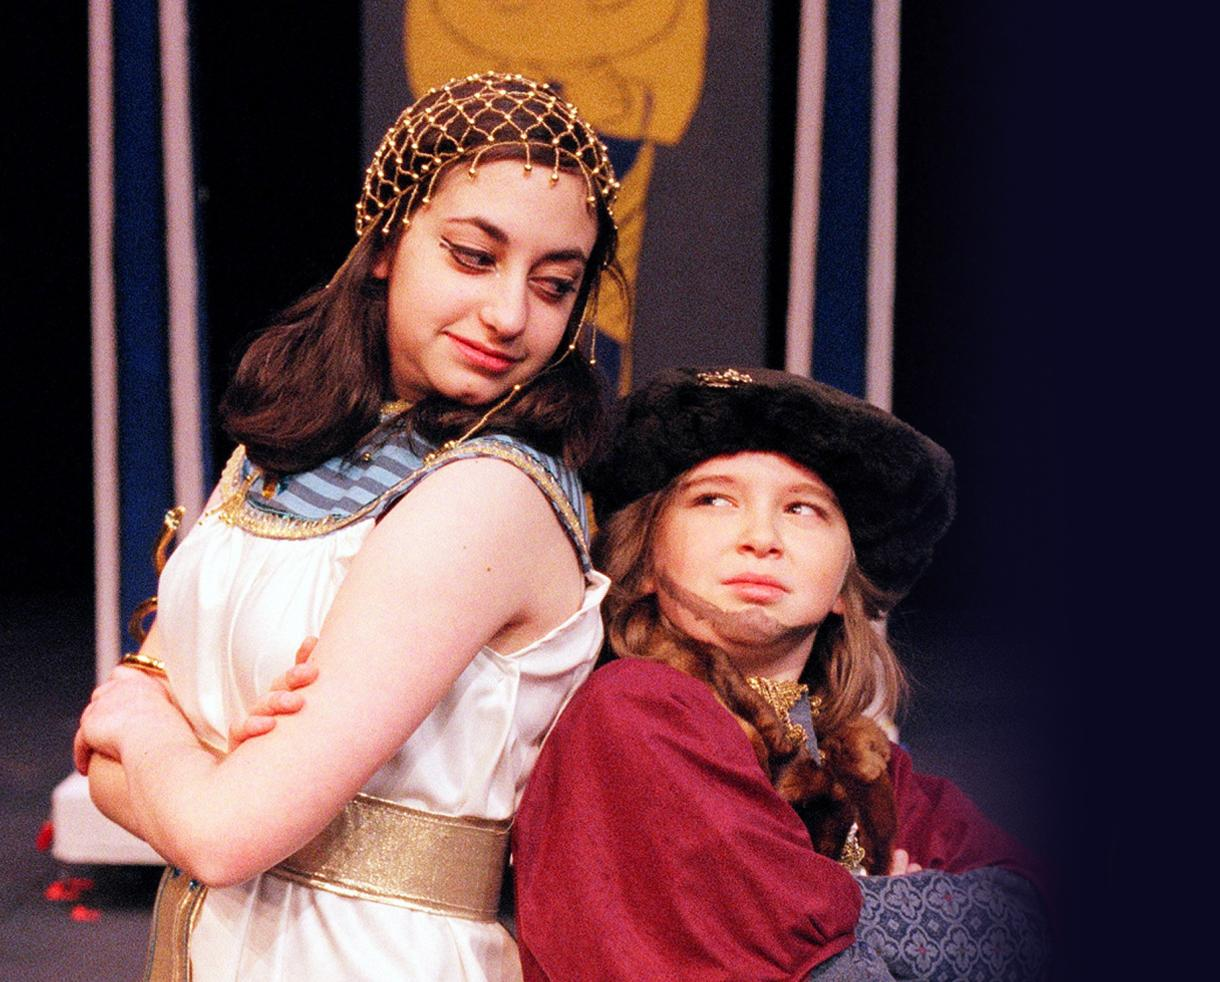 $9 for Ticket to Night at the Wax Museum Presented by Encore Stage & Studio in Arlington for Ages 6+ ($15 Value - 40% Off)